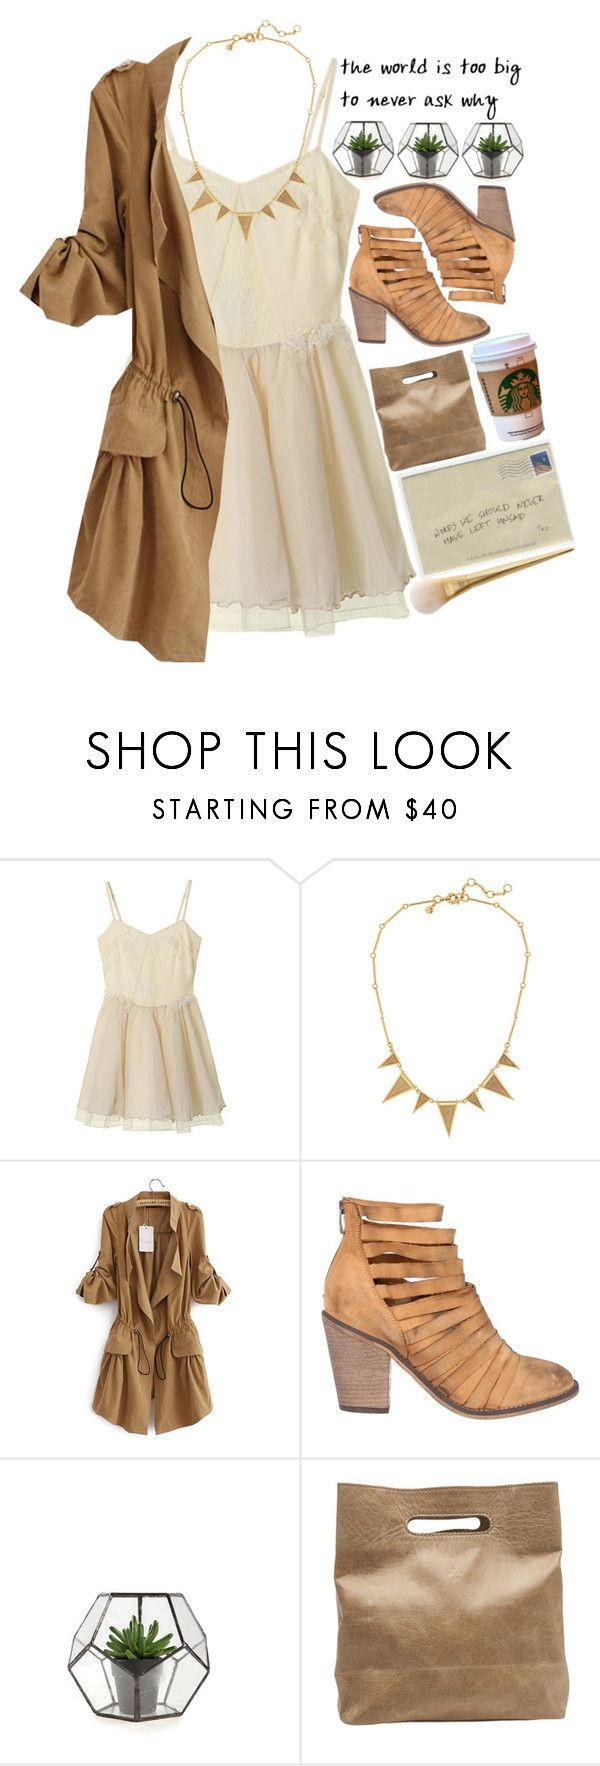 """Even when all is said and done there's still so much possibility."" by paper-faces-on-parade ❤ liked on Polyvore featuring J.Crew, Free People and Marie Turnor"